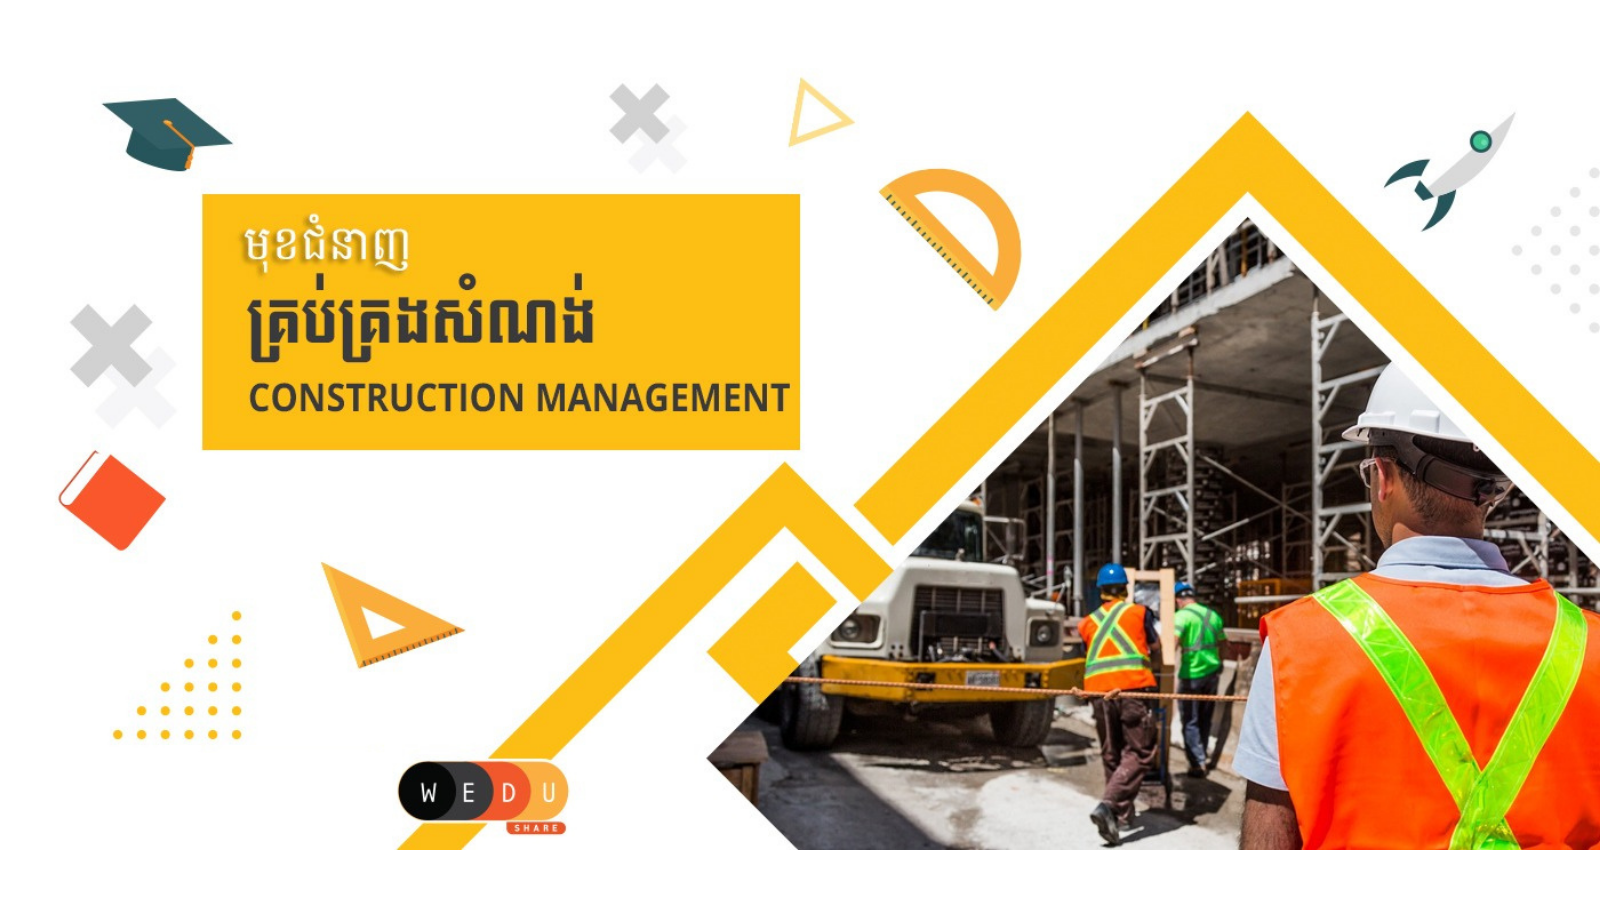 What Is Construction Management?